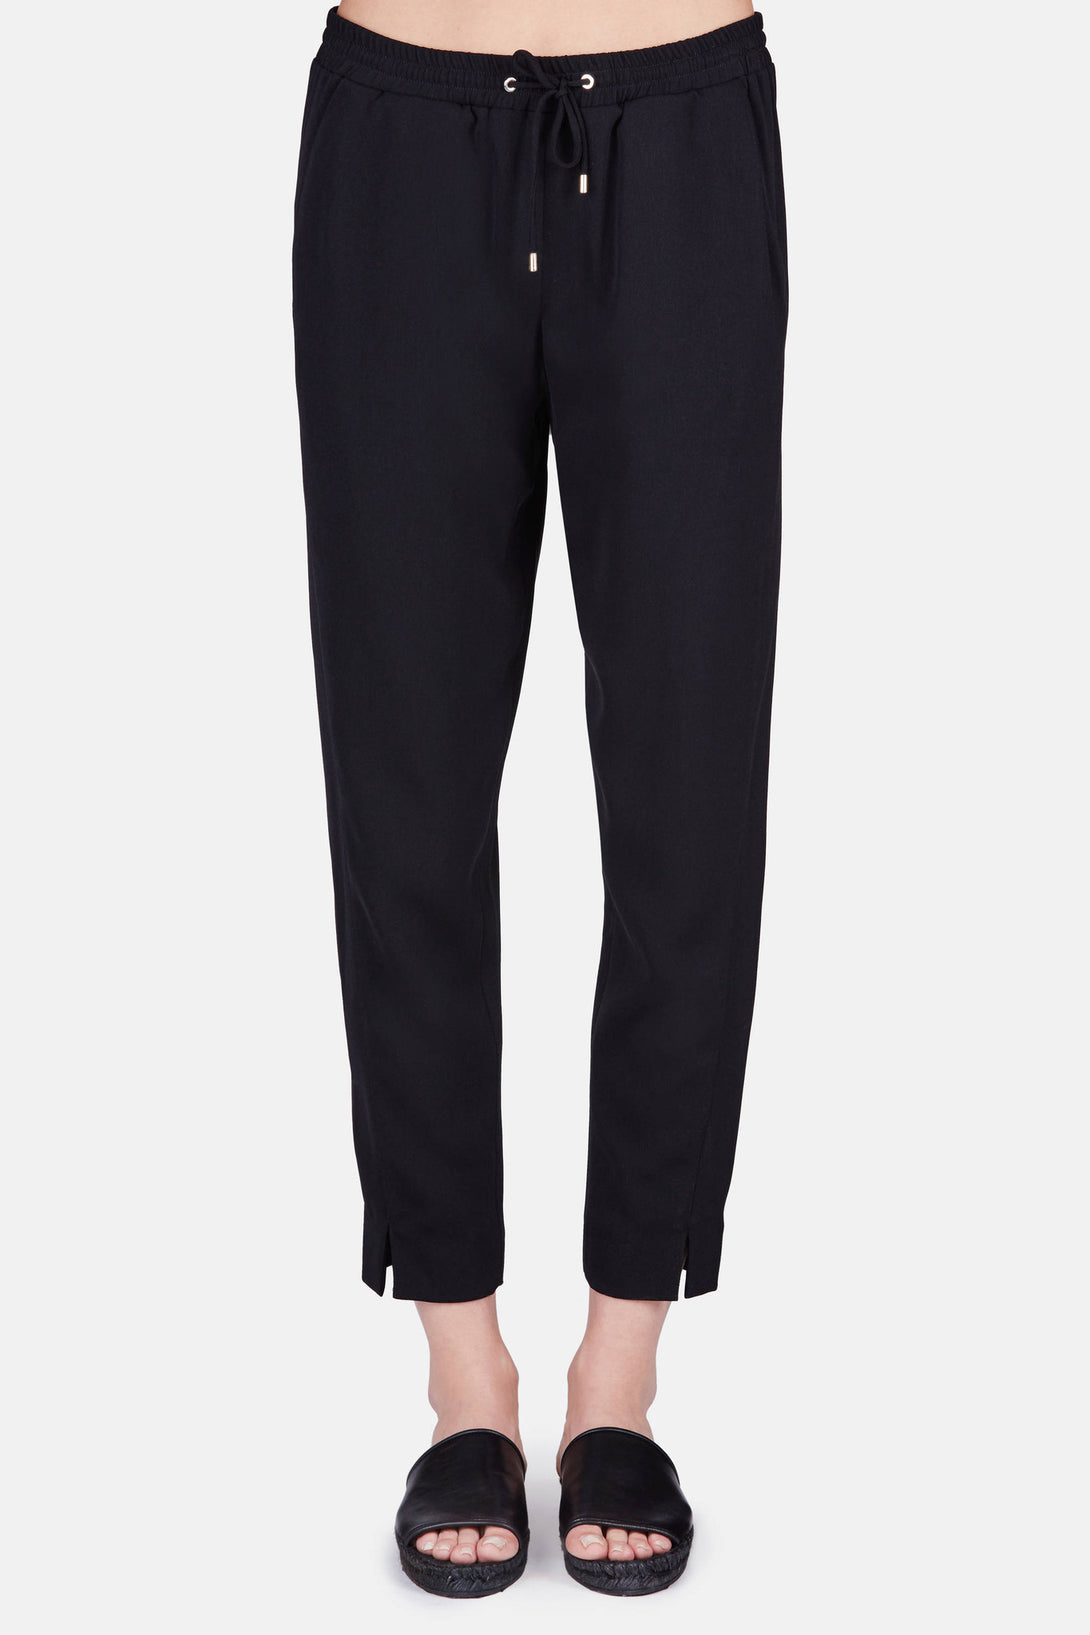 Joggers - Black Suiting